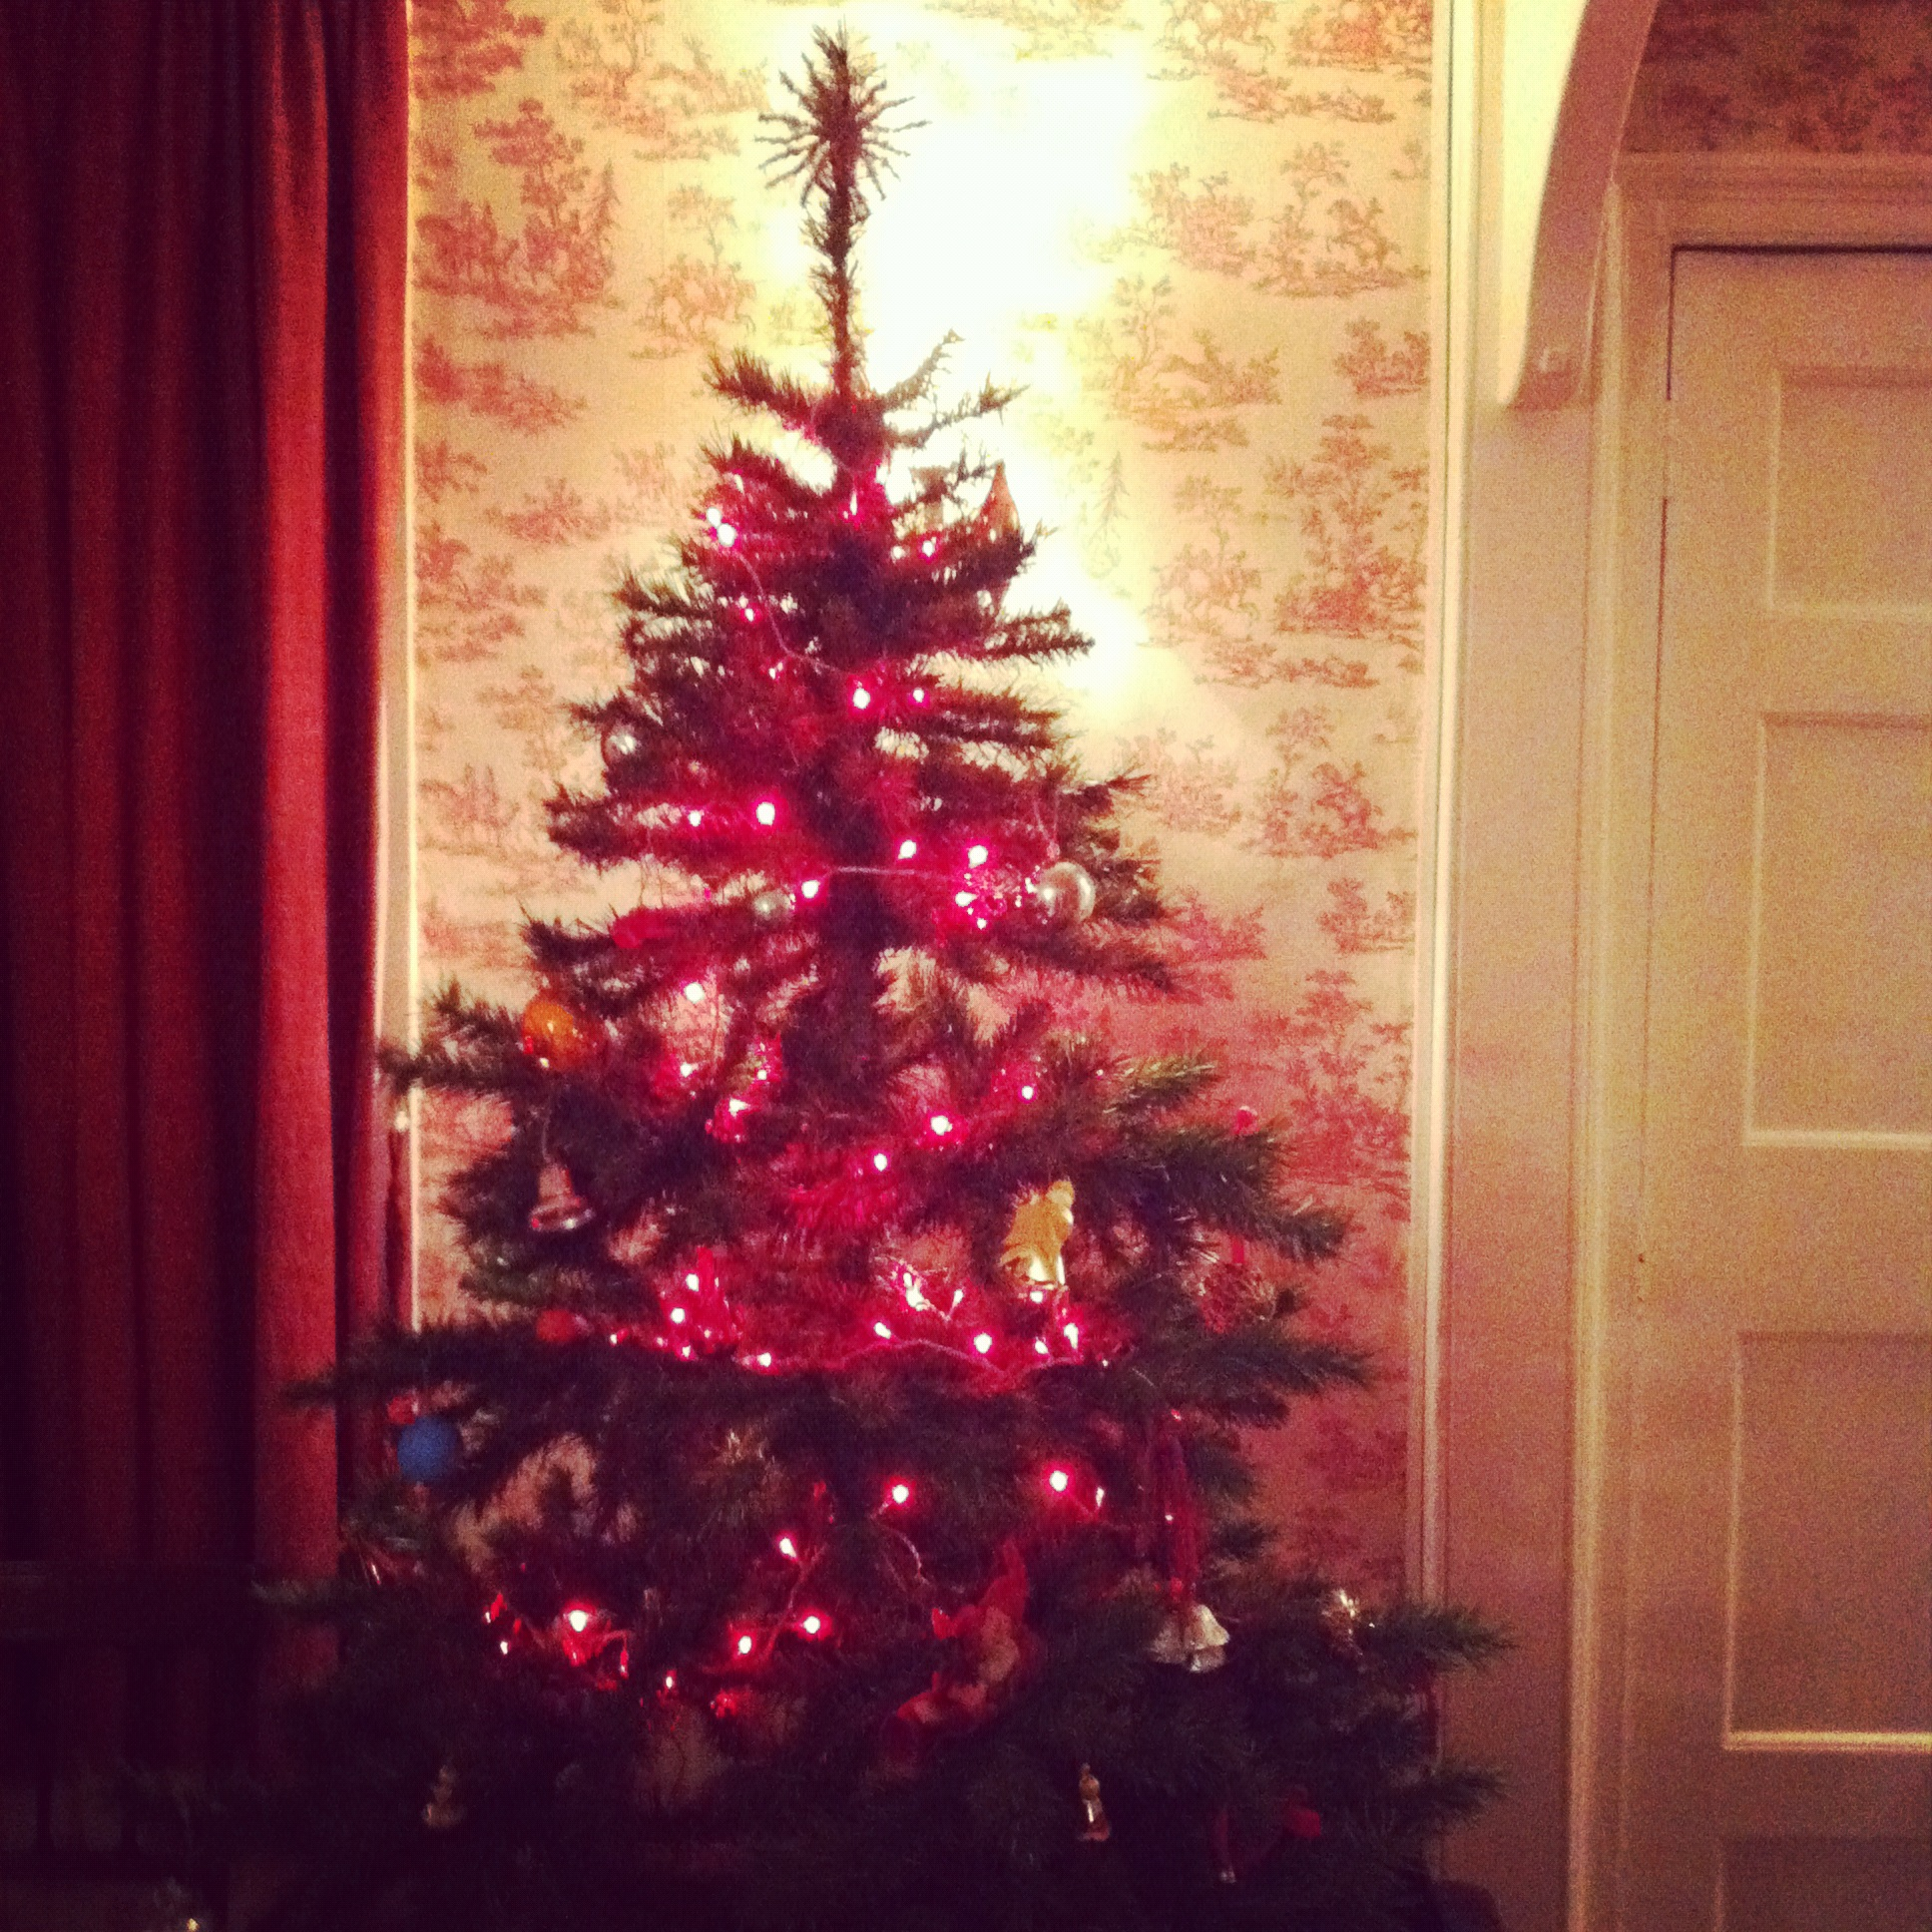 Happy Christmas! The tree chez Watson